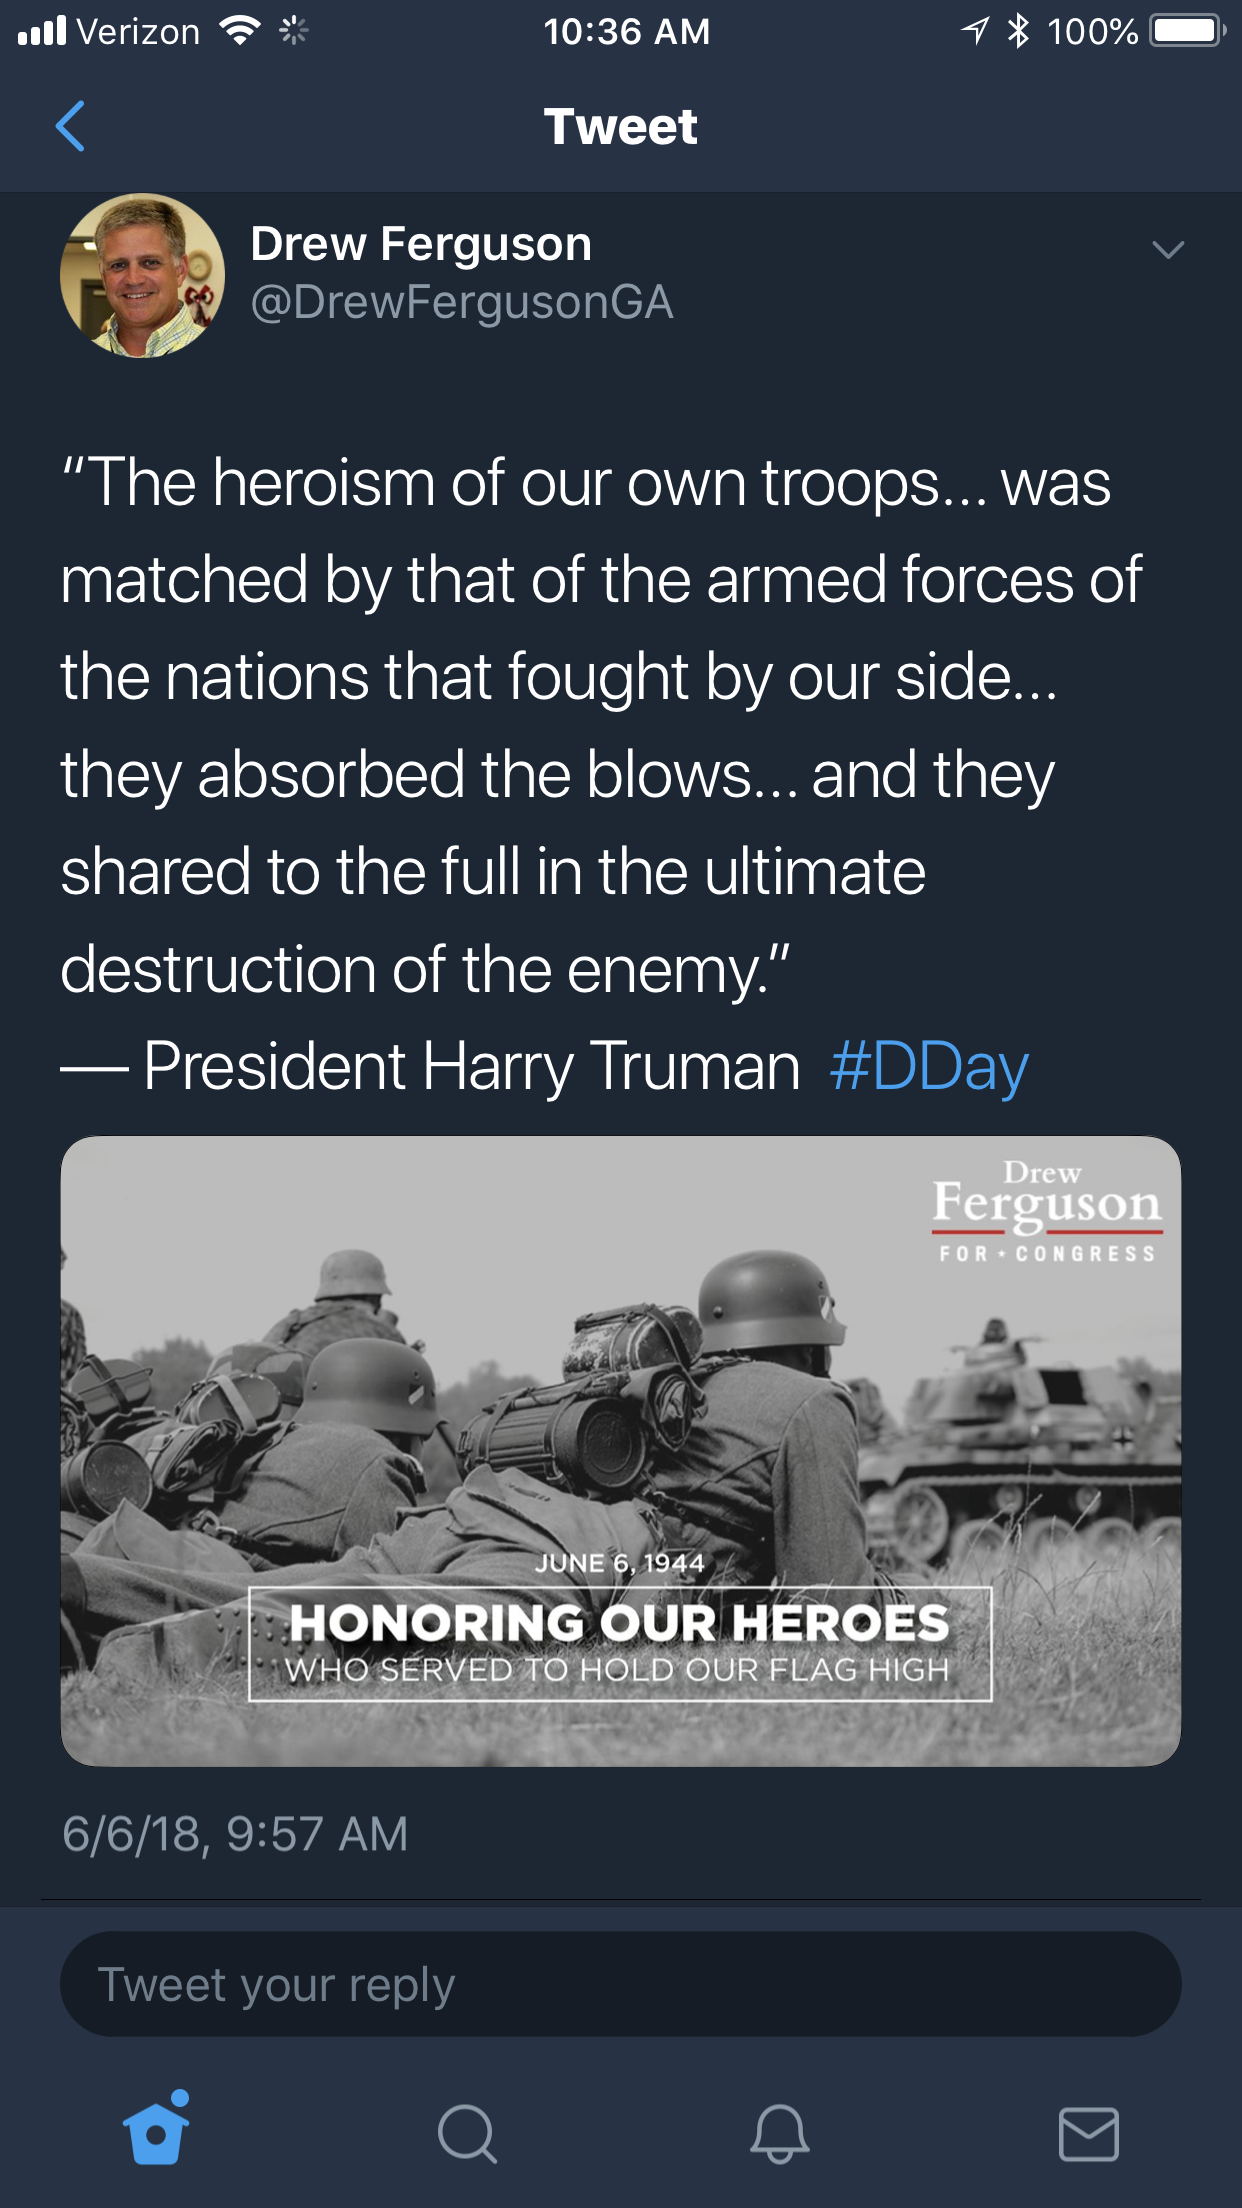 Rep. Drew Ferguson's campaign Twitter page posted this tribute to D-Day with an image of German soldiers